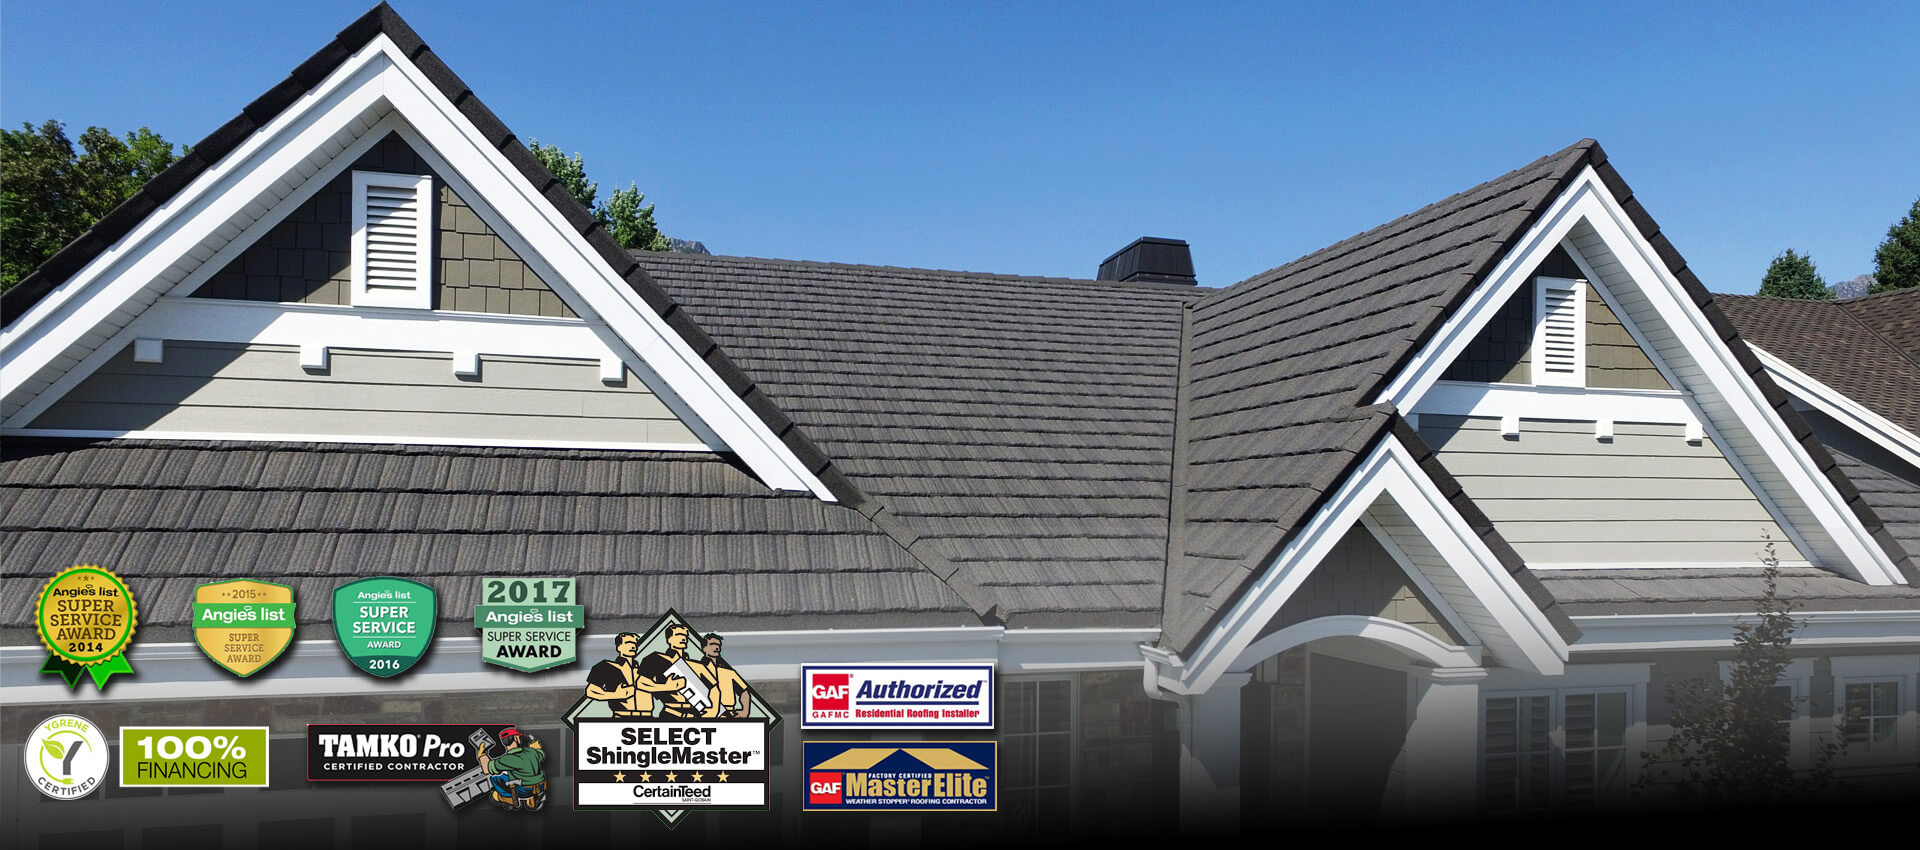 Financing available on new roofs